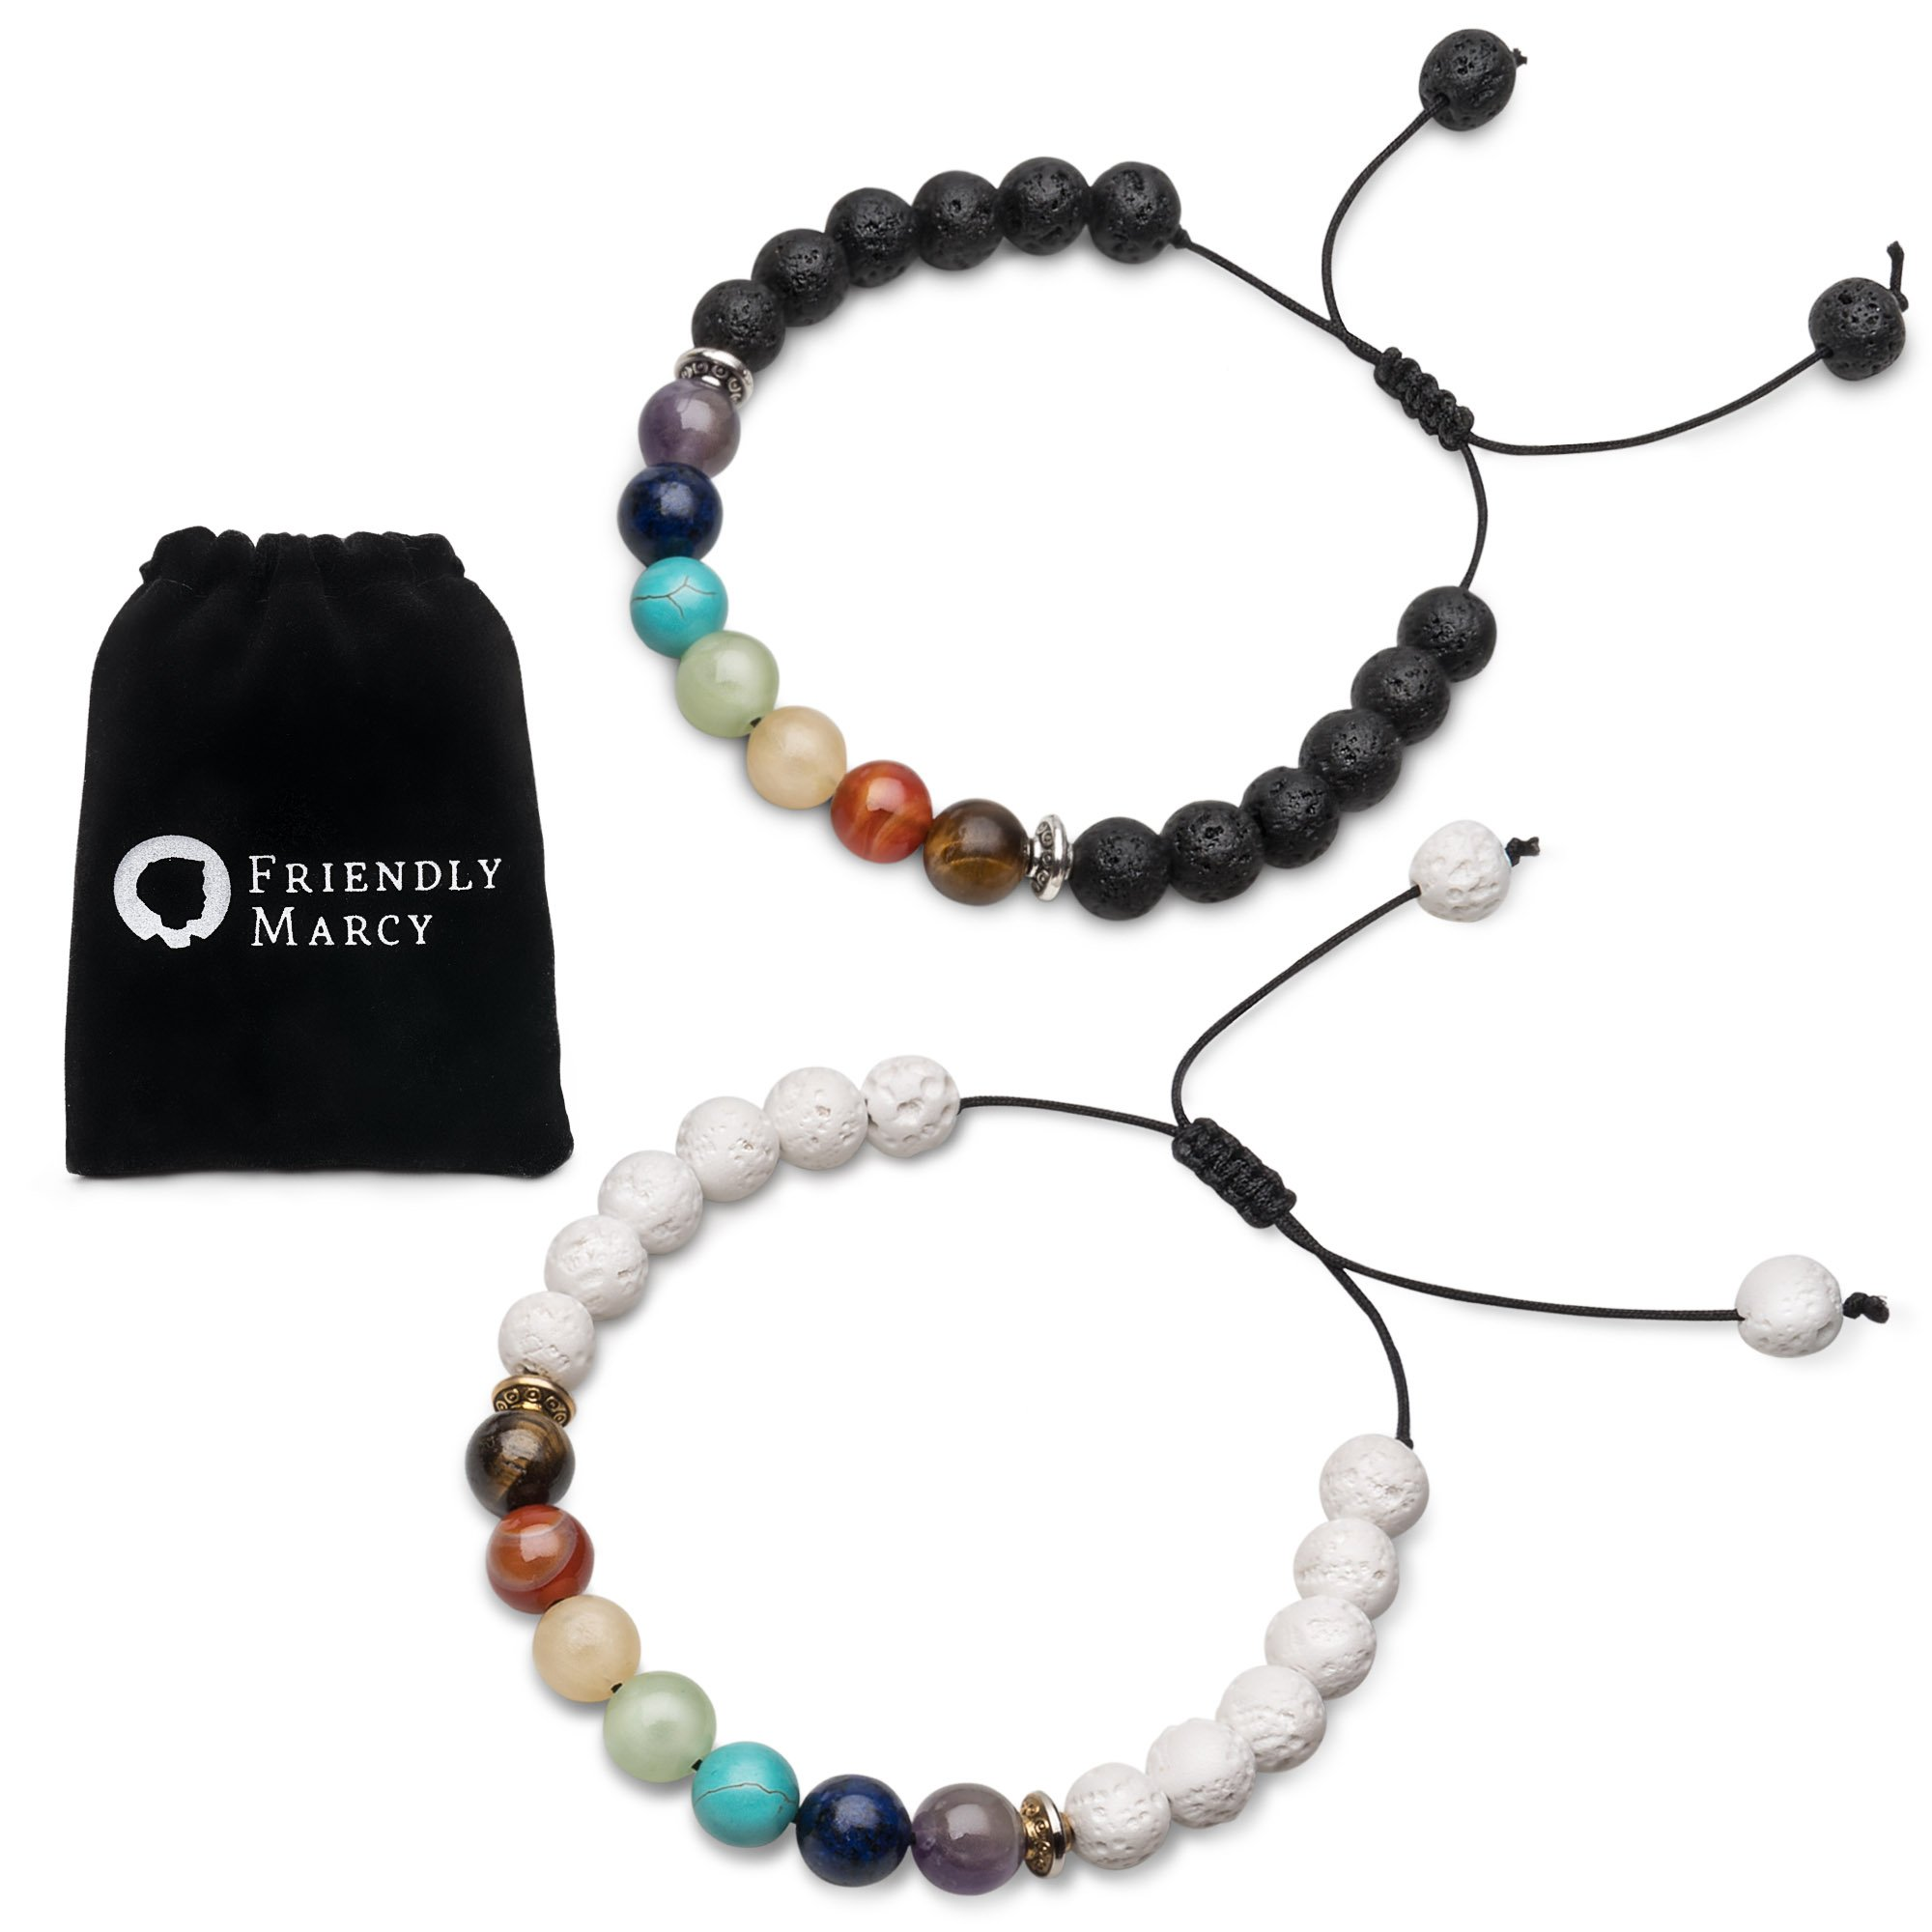 Friendly Marcy Chakra & Lava Rock Stones - Essential Oil Diffusers Bracelets for Women and Men - Also Suitable as Distance Bracelets for Couples – Natural Semi Precious Gemstones Beads (A set of 2)